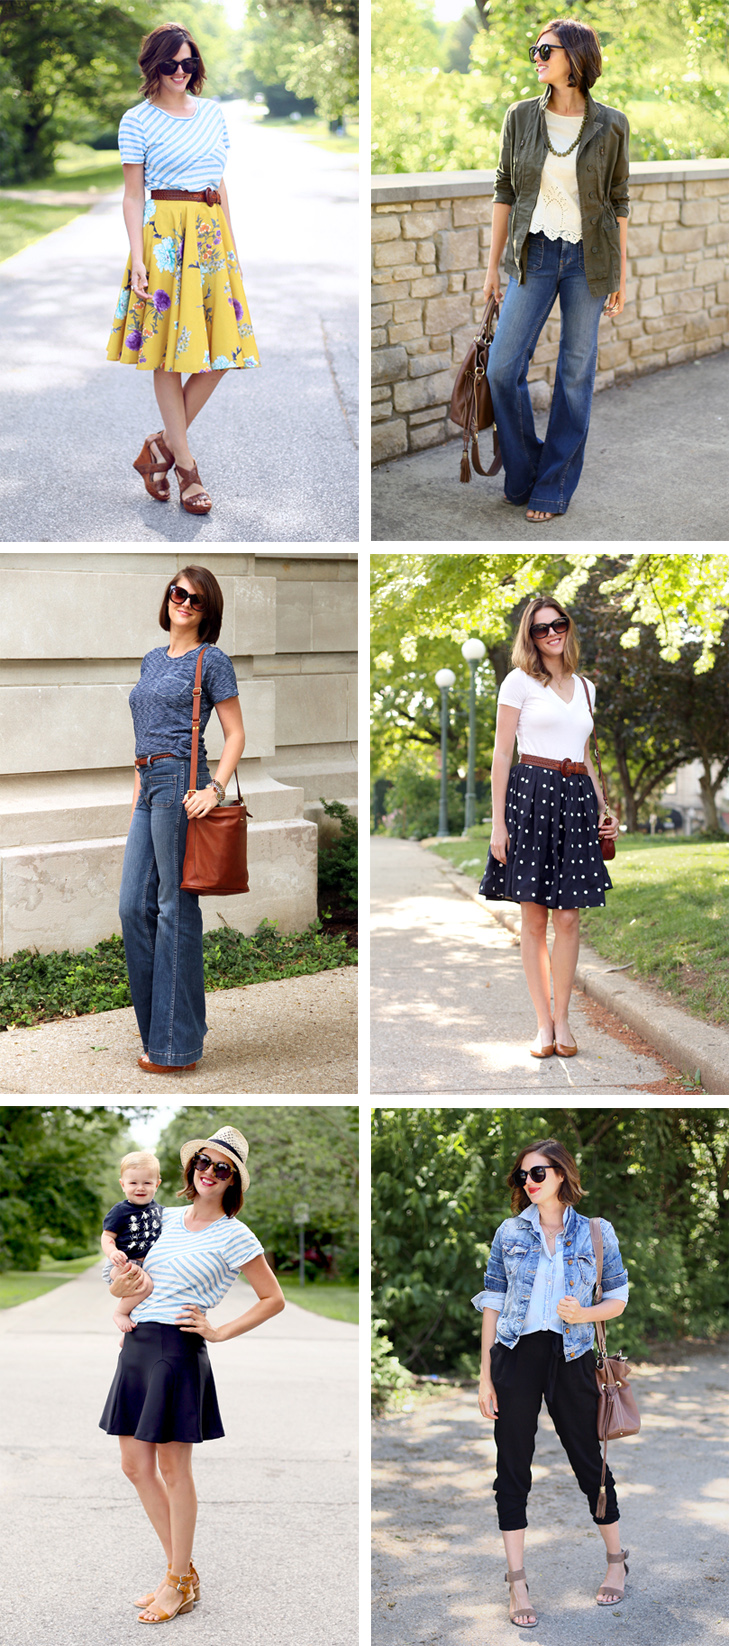 Spring Outfit Ideas, Jessica Quirk outfits, What to wear for spring